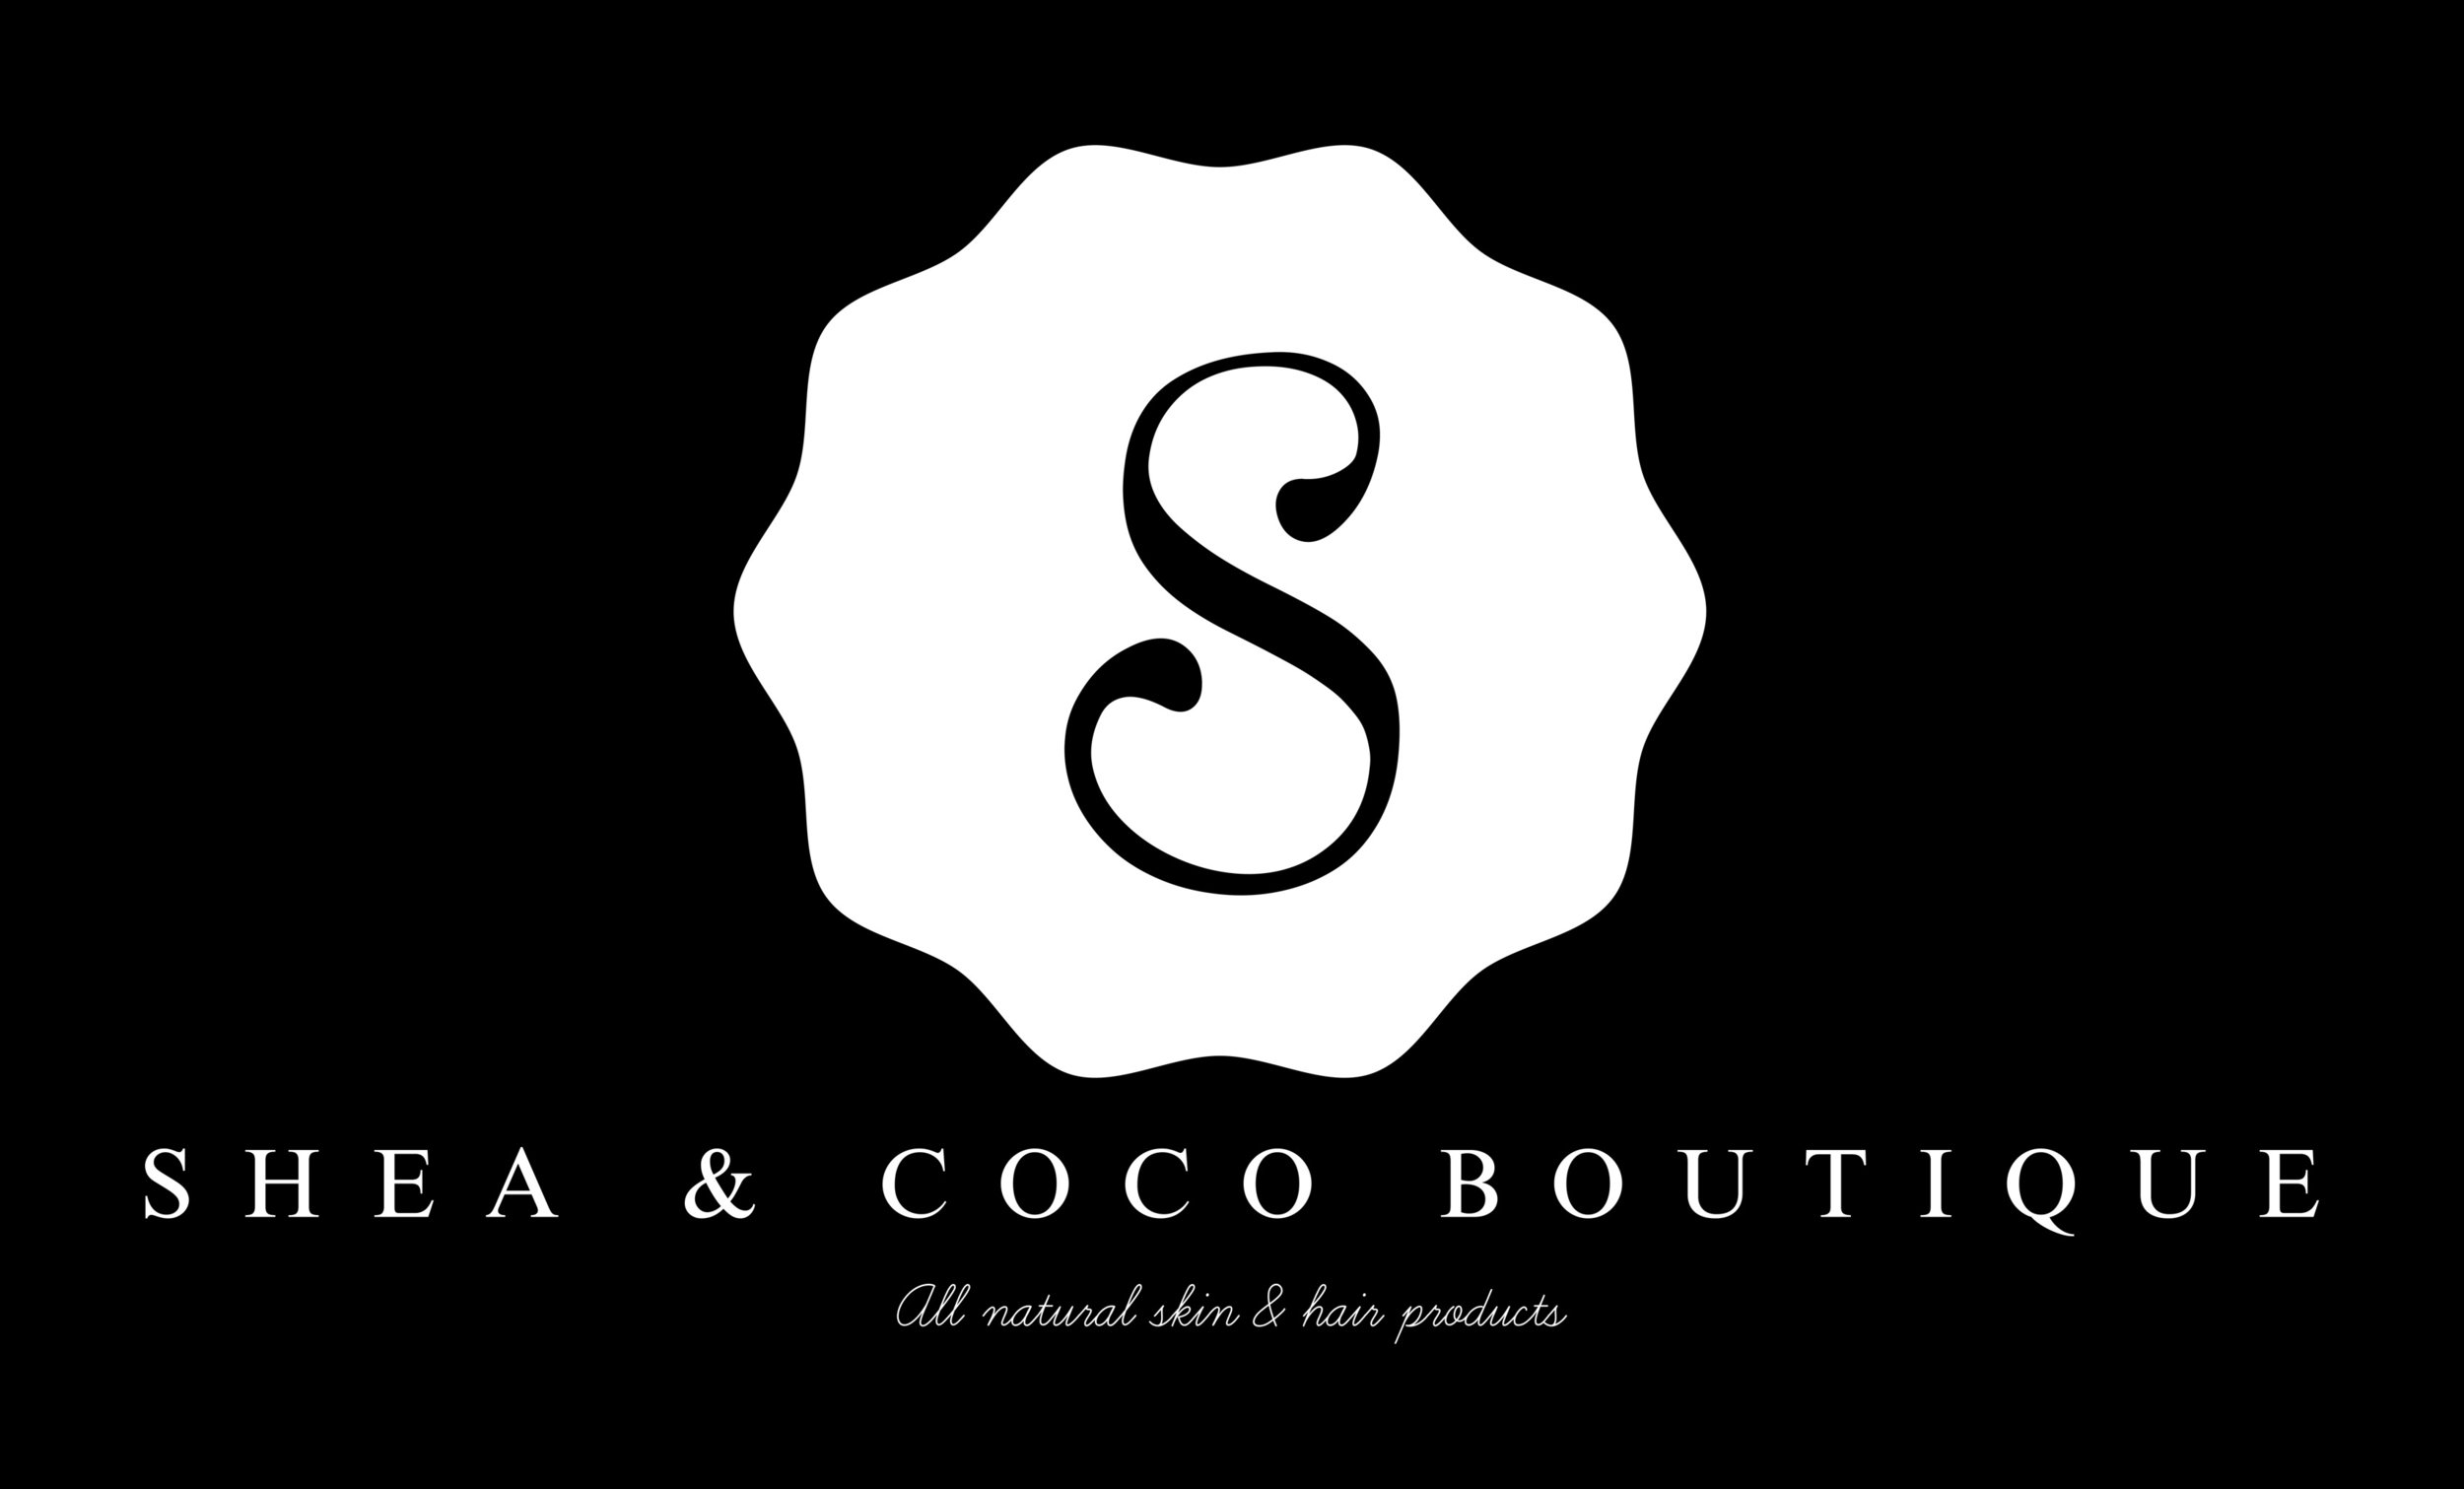 Shea & Coco Boutique   Cherrelle Harville, owner and CEO of Shea & Coco Boutique, and mother of 2 boys decided to create this line after many years of dry skin. Dry skin can be triggered by many different factors such as not moisturizing, hot showers, stress, weather, caffeine, alcohol, harsh soaps – the list goes on! Once she had her 2 boys she noticed they too had the same issues as well as sensitive skin, so she decided to create products made purely from 100% Raw unrefined Organic Shea Butter and Organic unrefined Coconut Oil to help aid in the nourishing and moisturizing of the skins healing process. Lightly scented with essential oils and other all natural ingredients, Shea and Coco products will have you feeling refreshed and renewed!